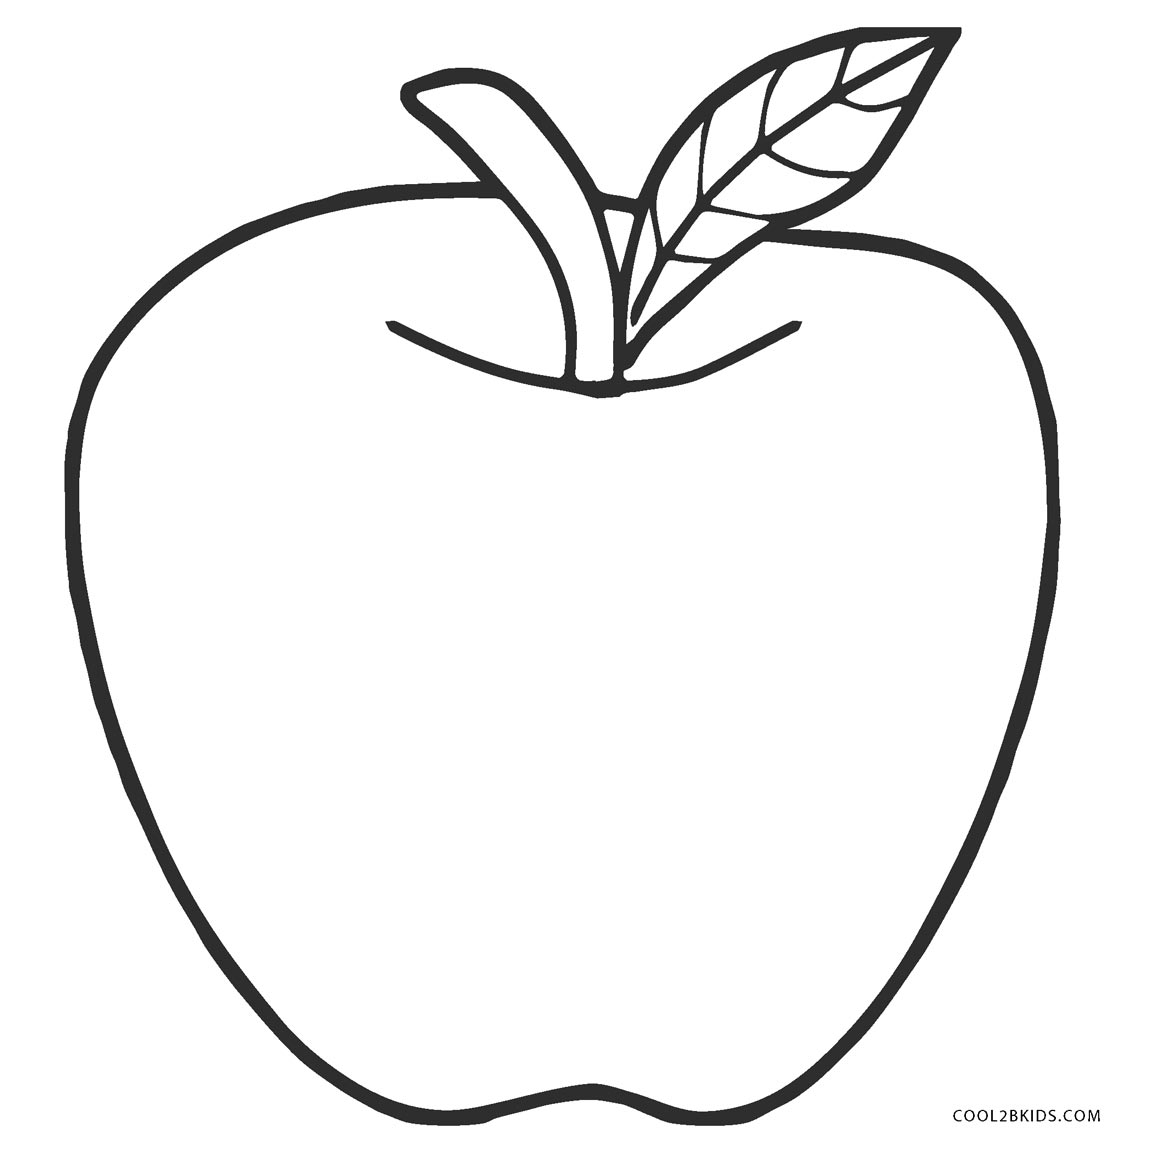 coloring apple picture apple coloring pages fotolipcom rich image and wallpaper picture coloring apple